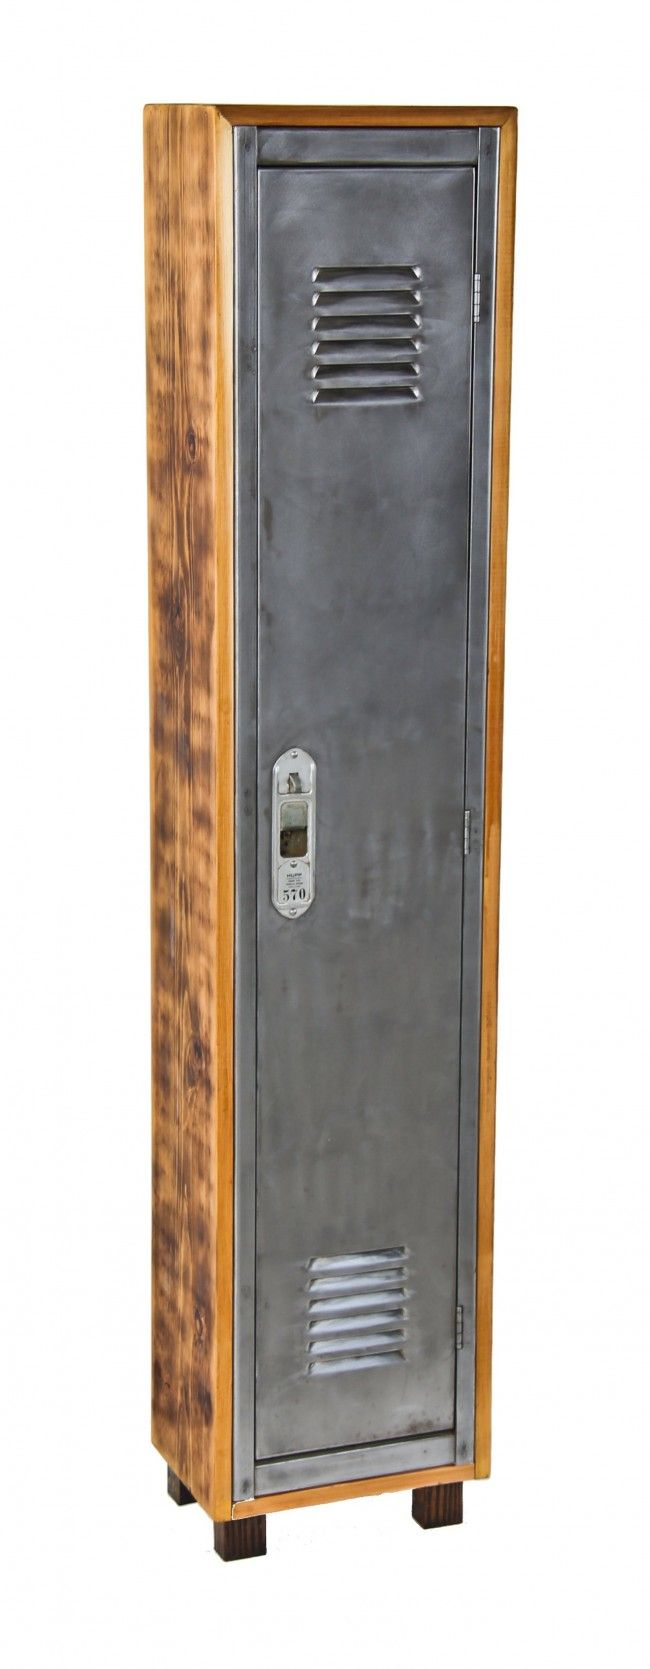 repurpose vintage locker, repurposed, transformed, rustic, industrial, furniture, diy ideas, cabinet, storage, shelves